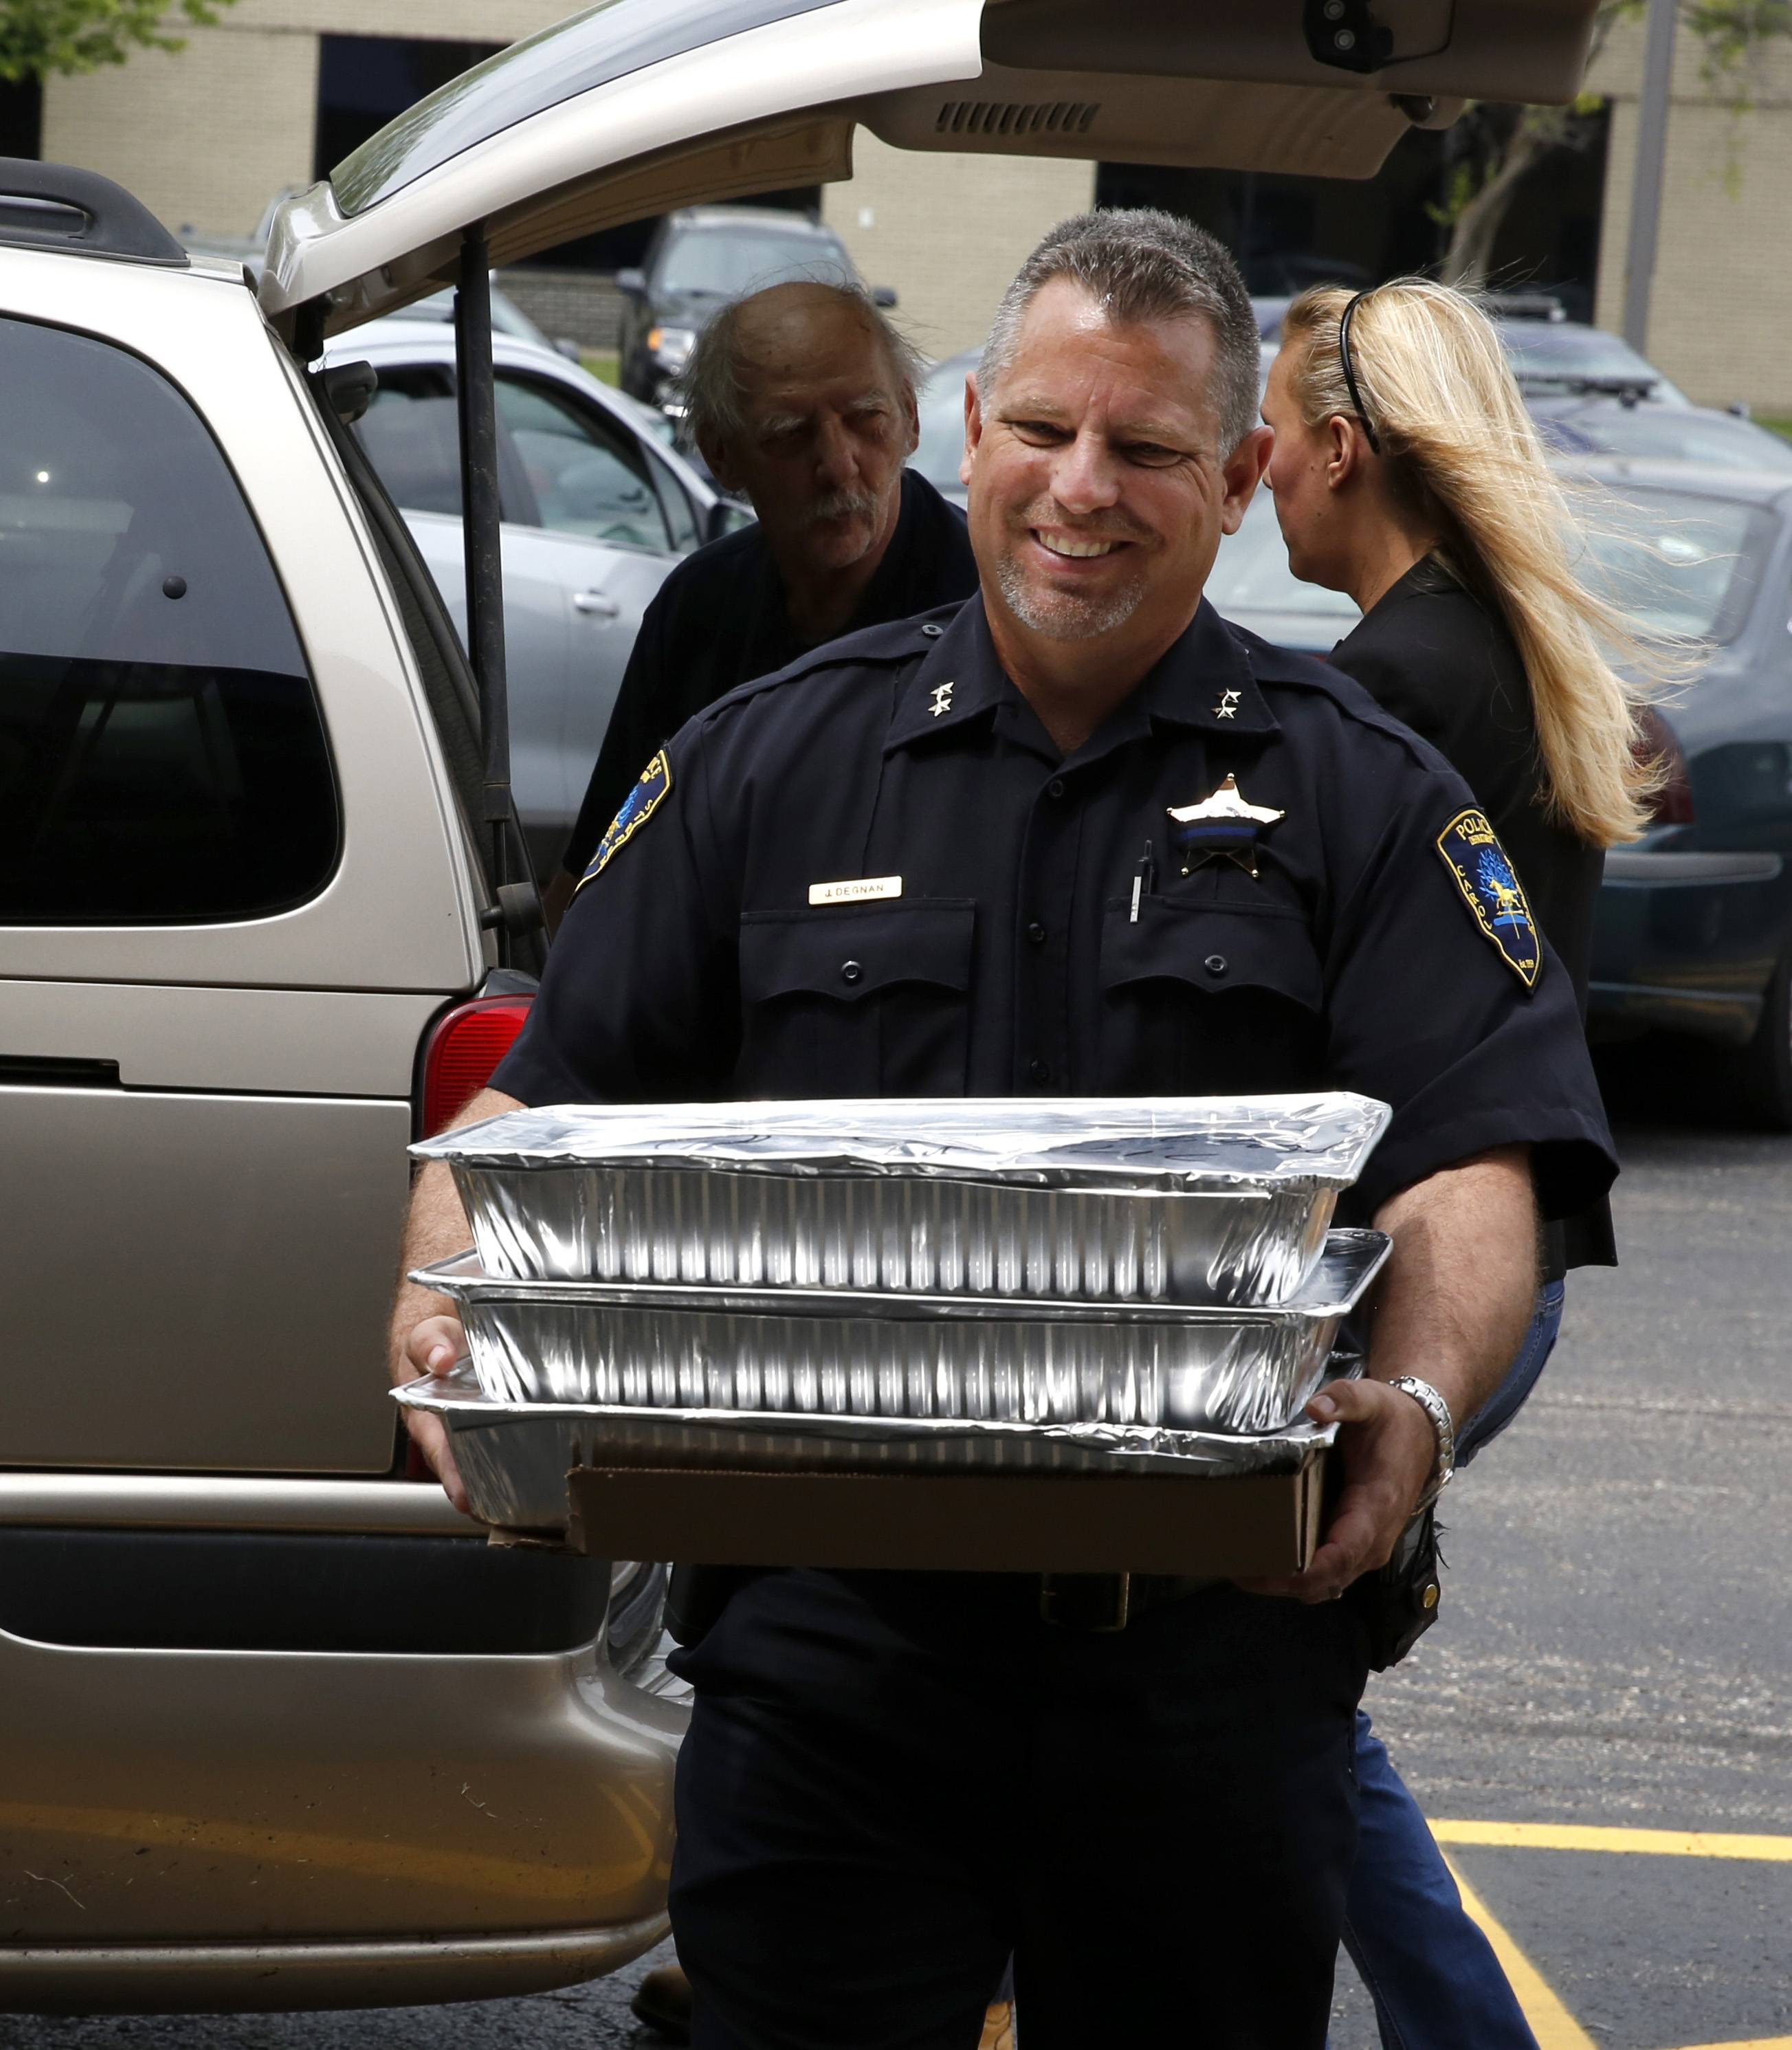 Carol Stream Deputy Police Chief Jeff Degnan carried food from Rosati's, which delivered lunch for officers in honor of National Police Week.